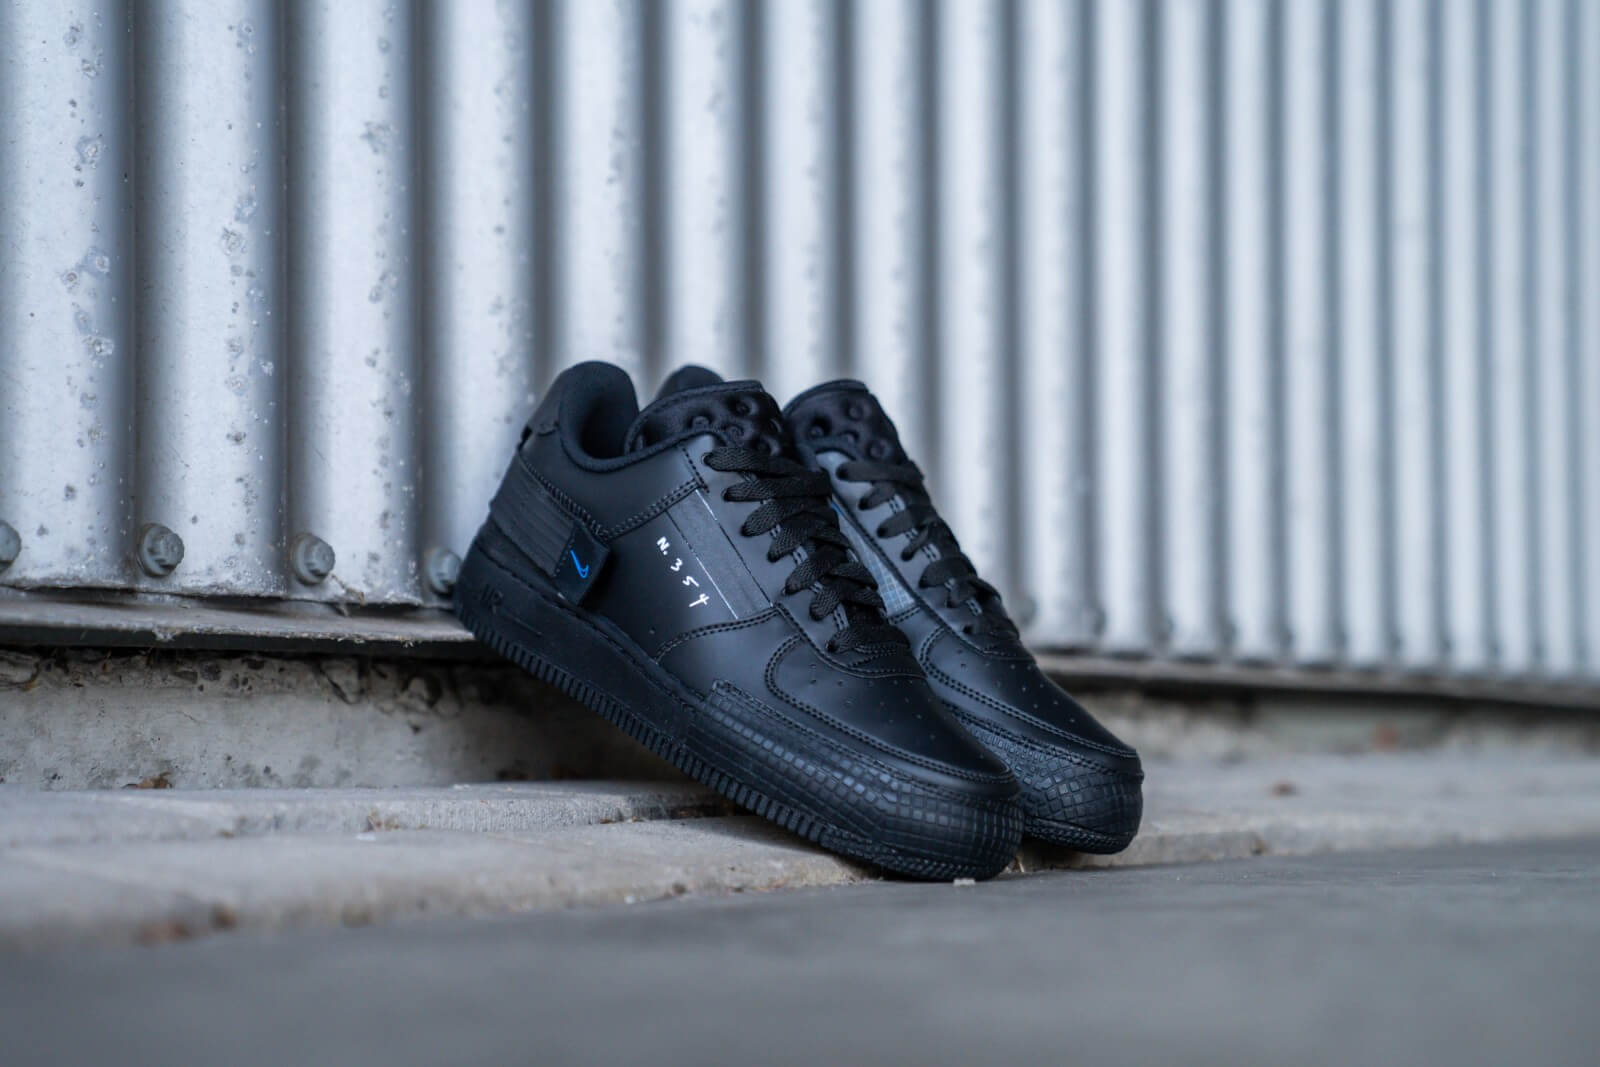 Nike Air Force 1 Type Black Royal AT7859 001 Restocks